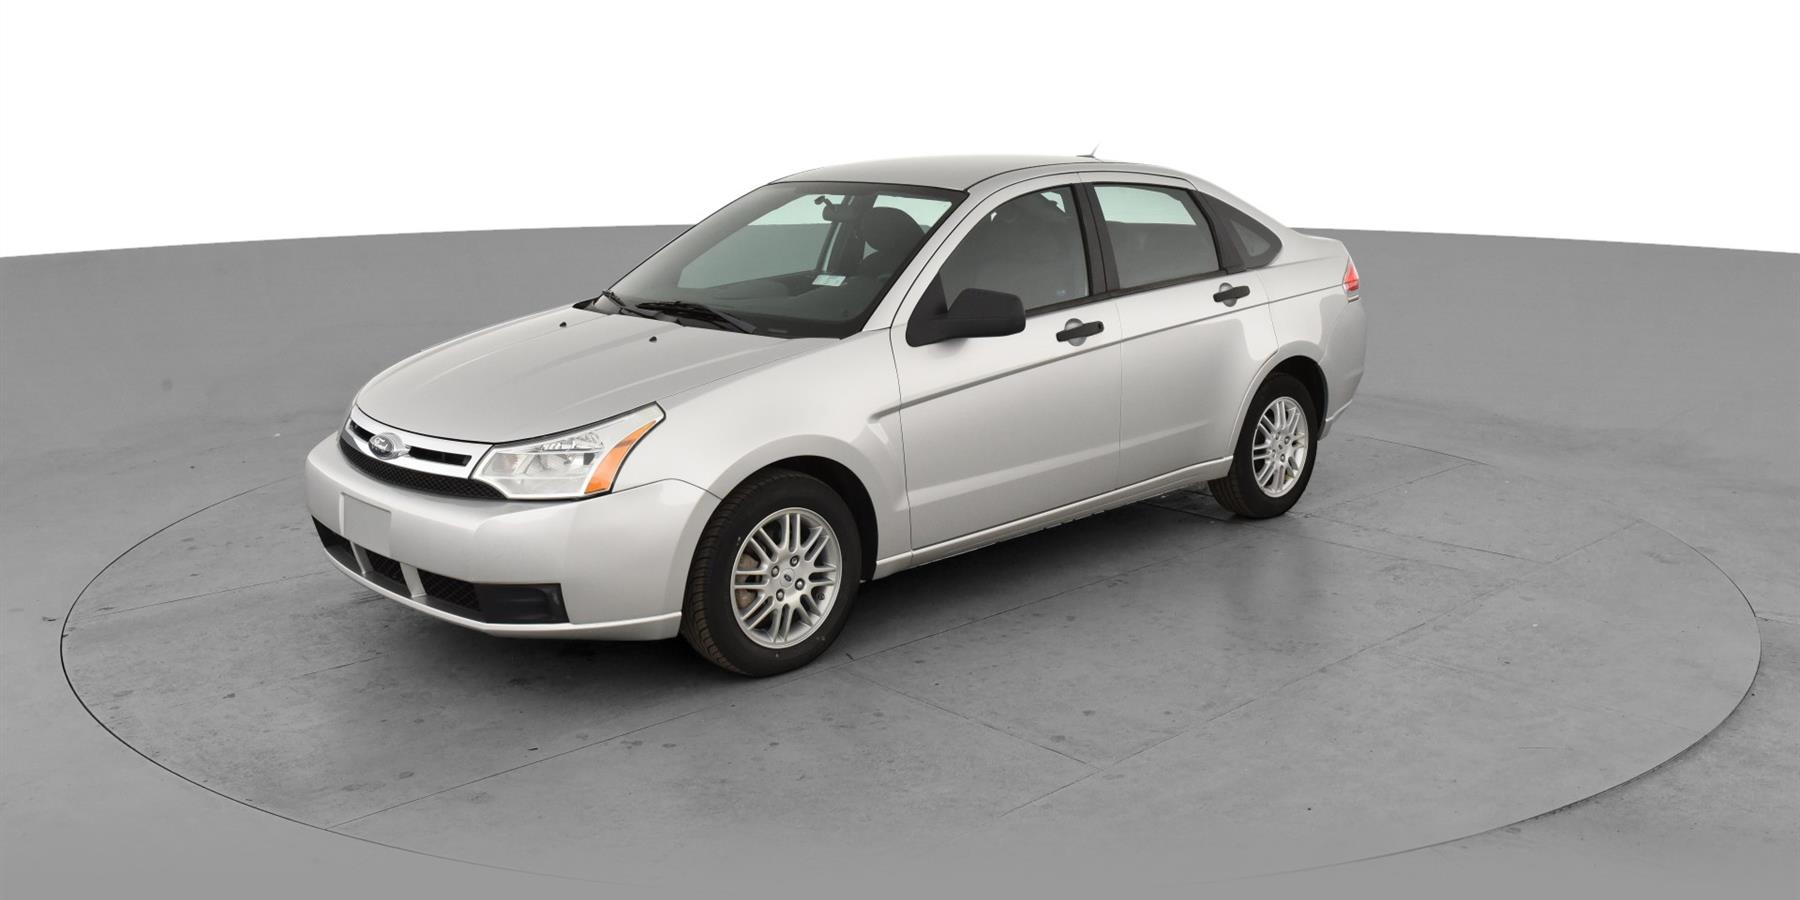 2010 Ford Focus Se Sedan 4d For Sale Carvana